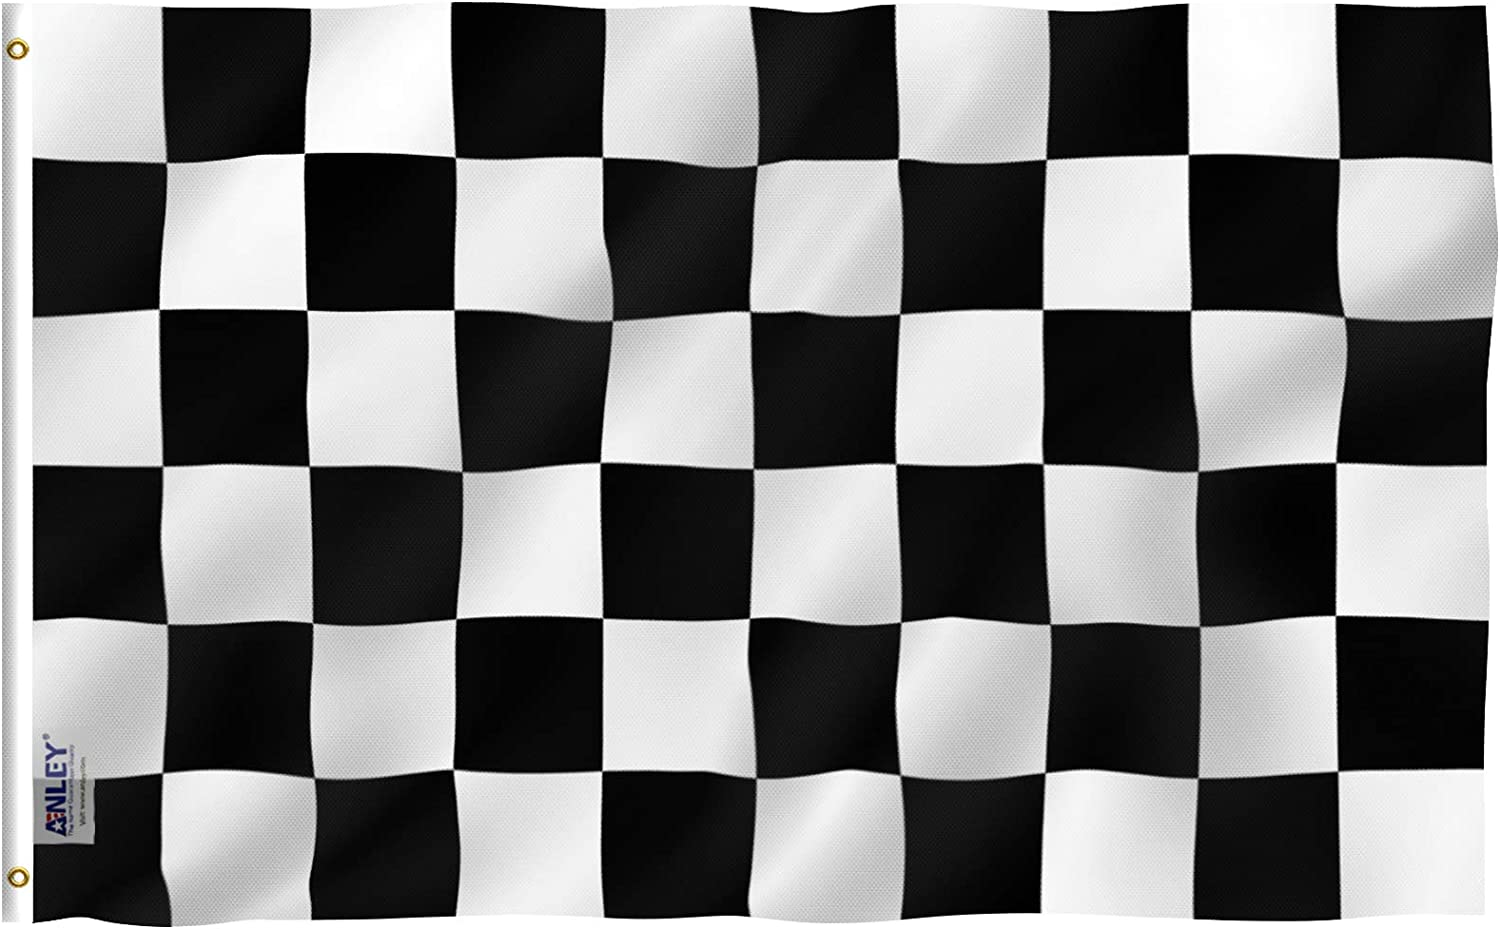 Anley Fly Breeze 3x5 Foot Checkered Flag - Vivid Color and Fade Proof - Canvas Header and Double Stitched - Black and White Racing Flags Polyester with Brass Grommets 3 X 5 Ft